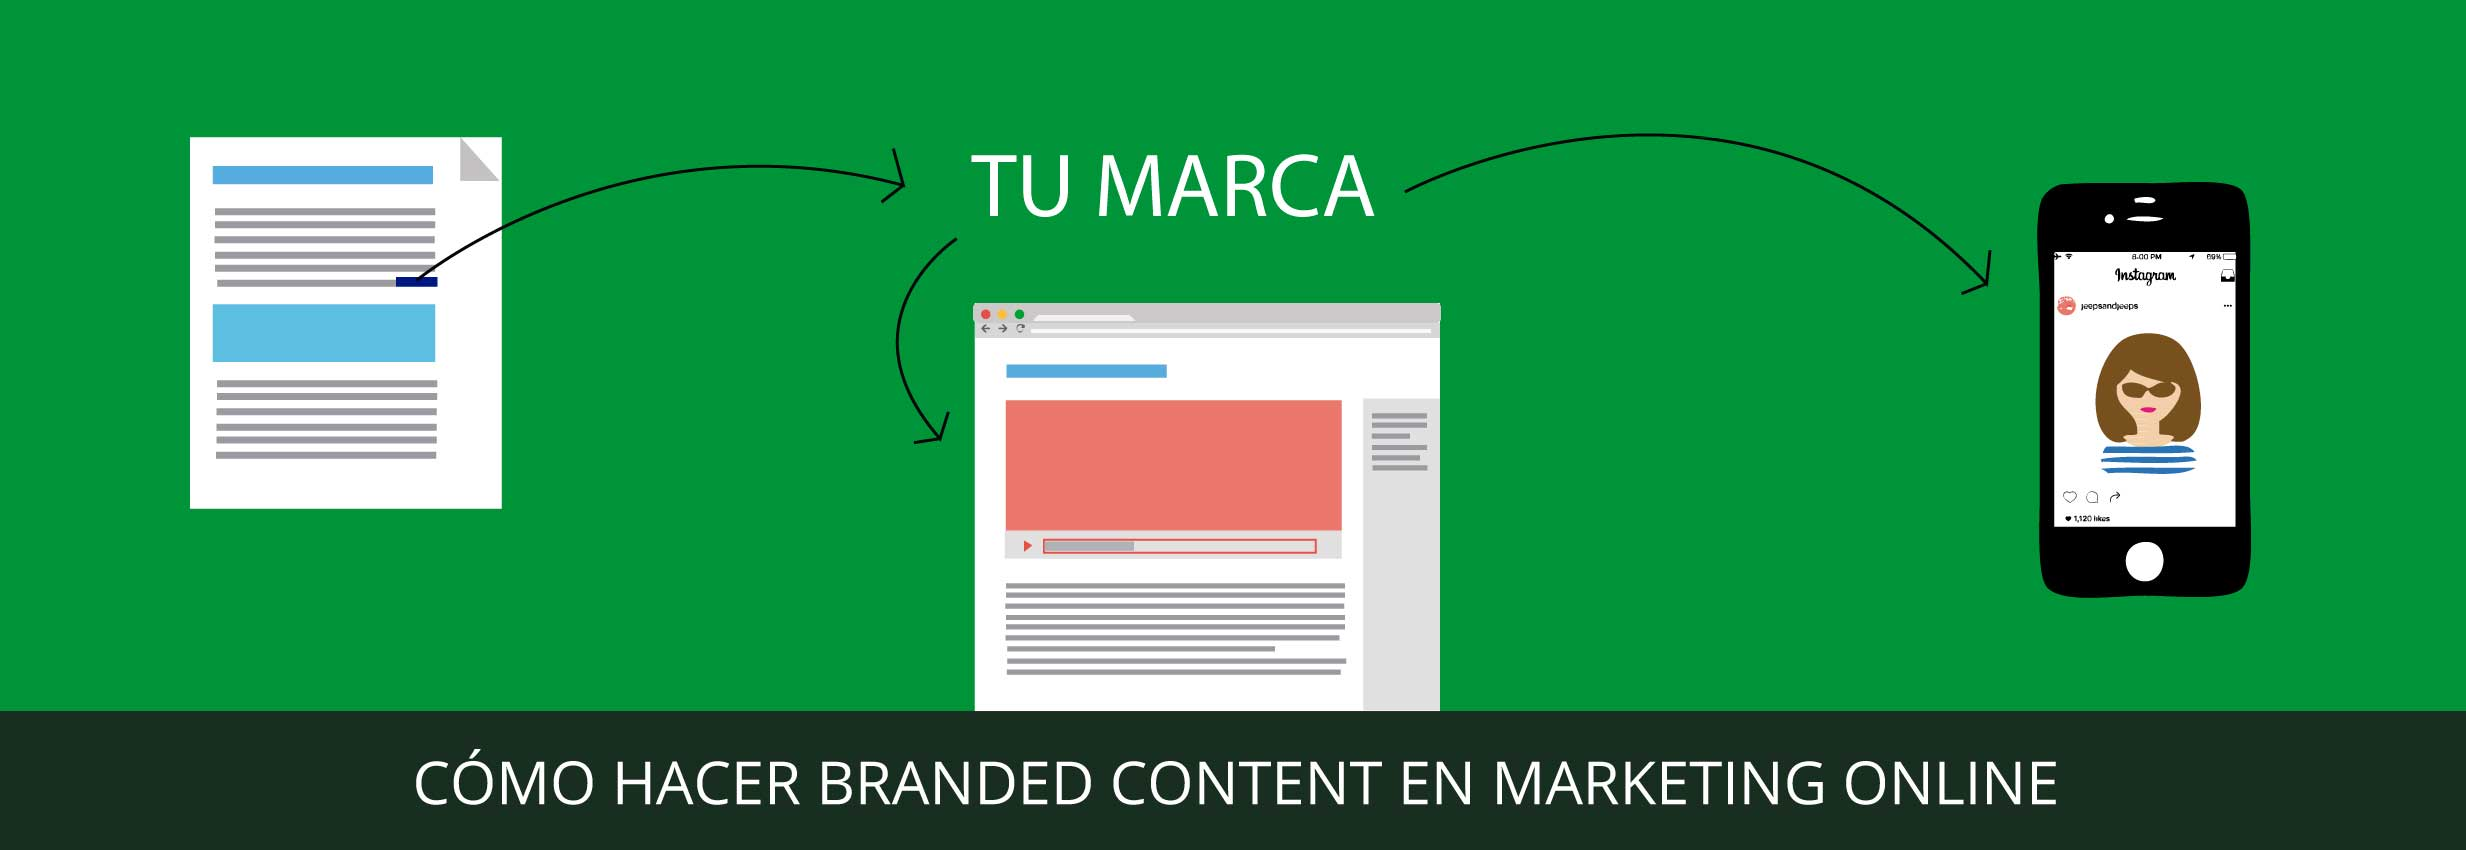 como-hacer-branded-content-en-marketing-online.jpg